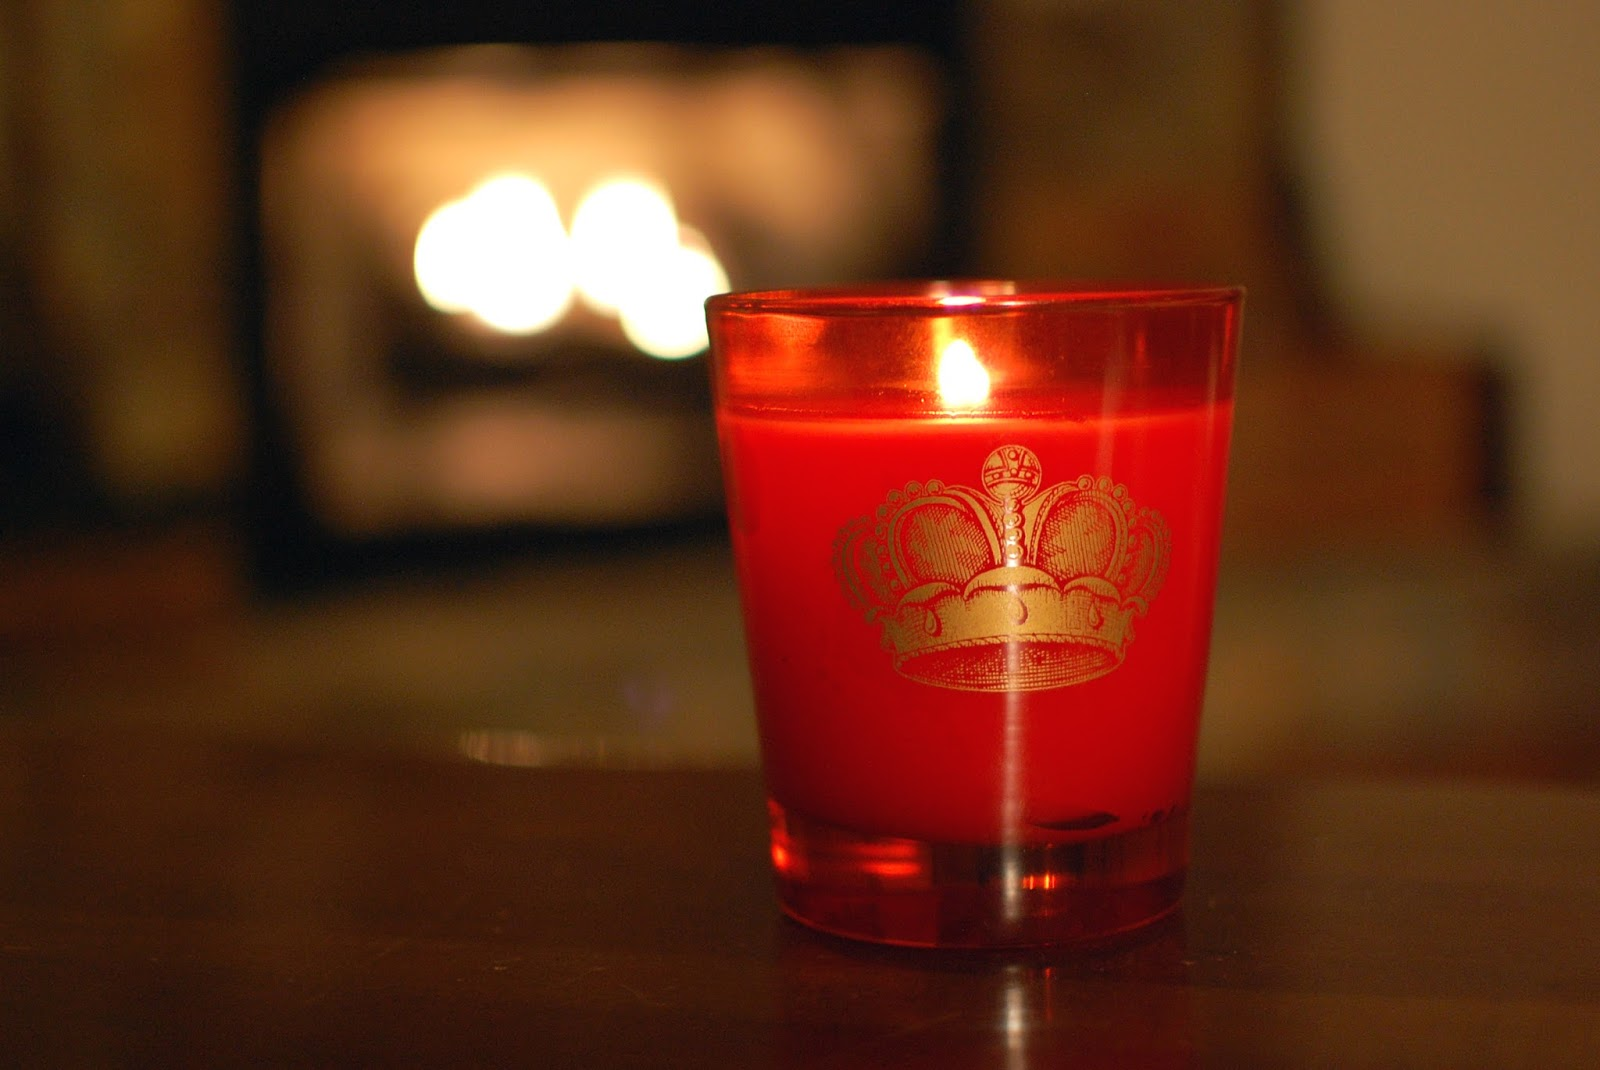 The redolent mermaid nest elton john 39 s fireside candle for Nest candles where to buy